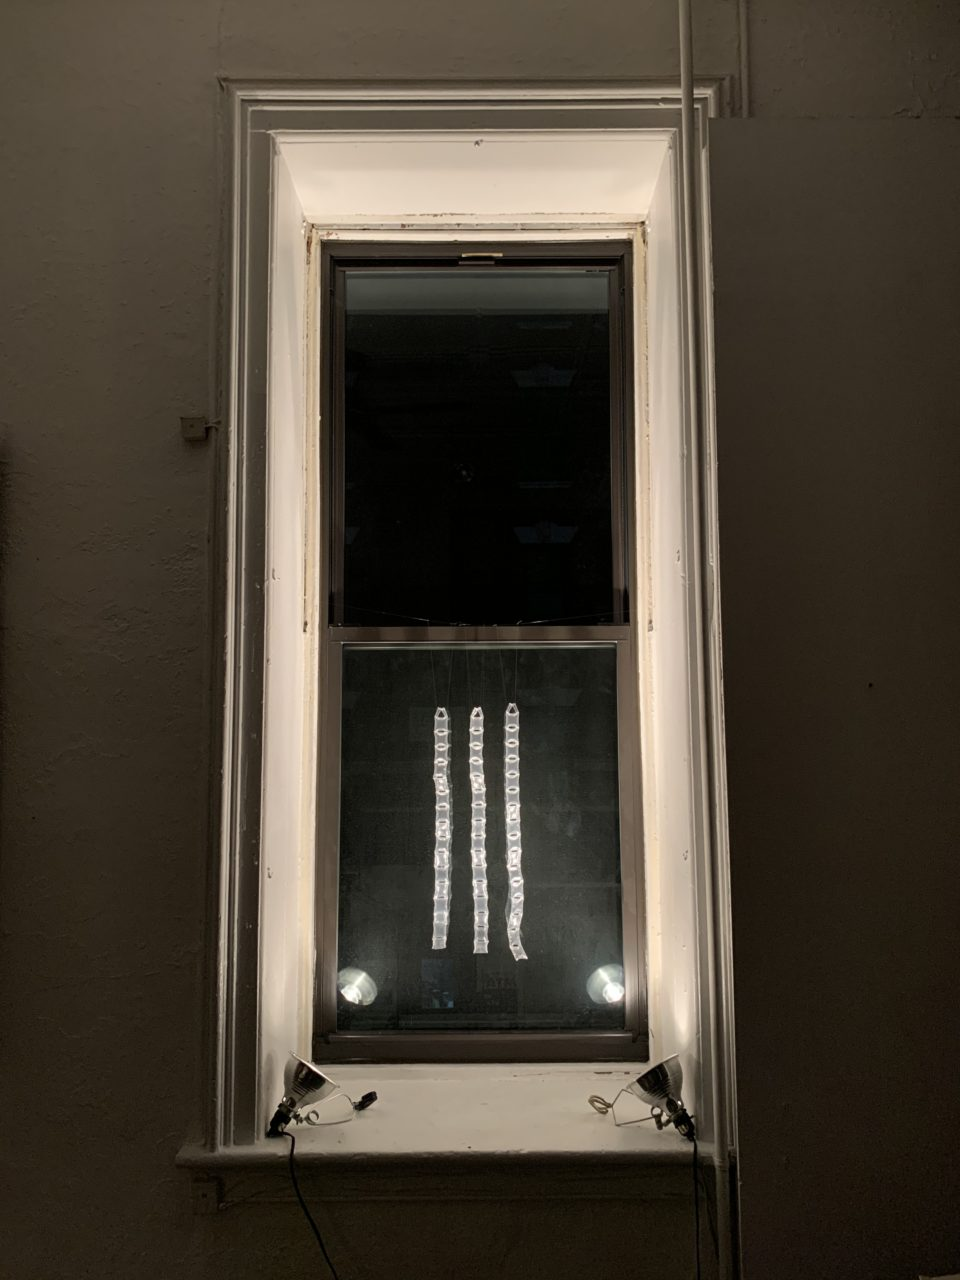 Cynthia Reynolds air cushion: one-inch square, six excised chambers Light Windows installation Mulberry Street